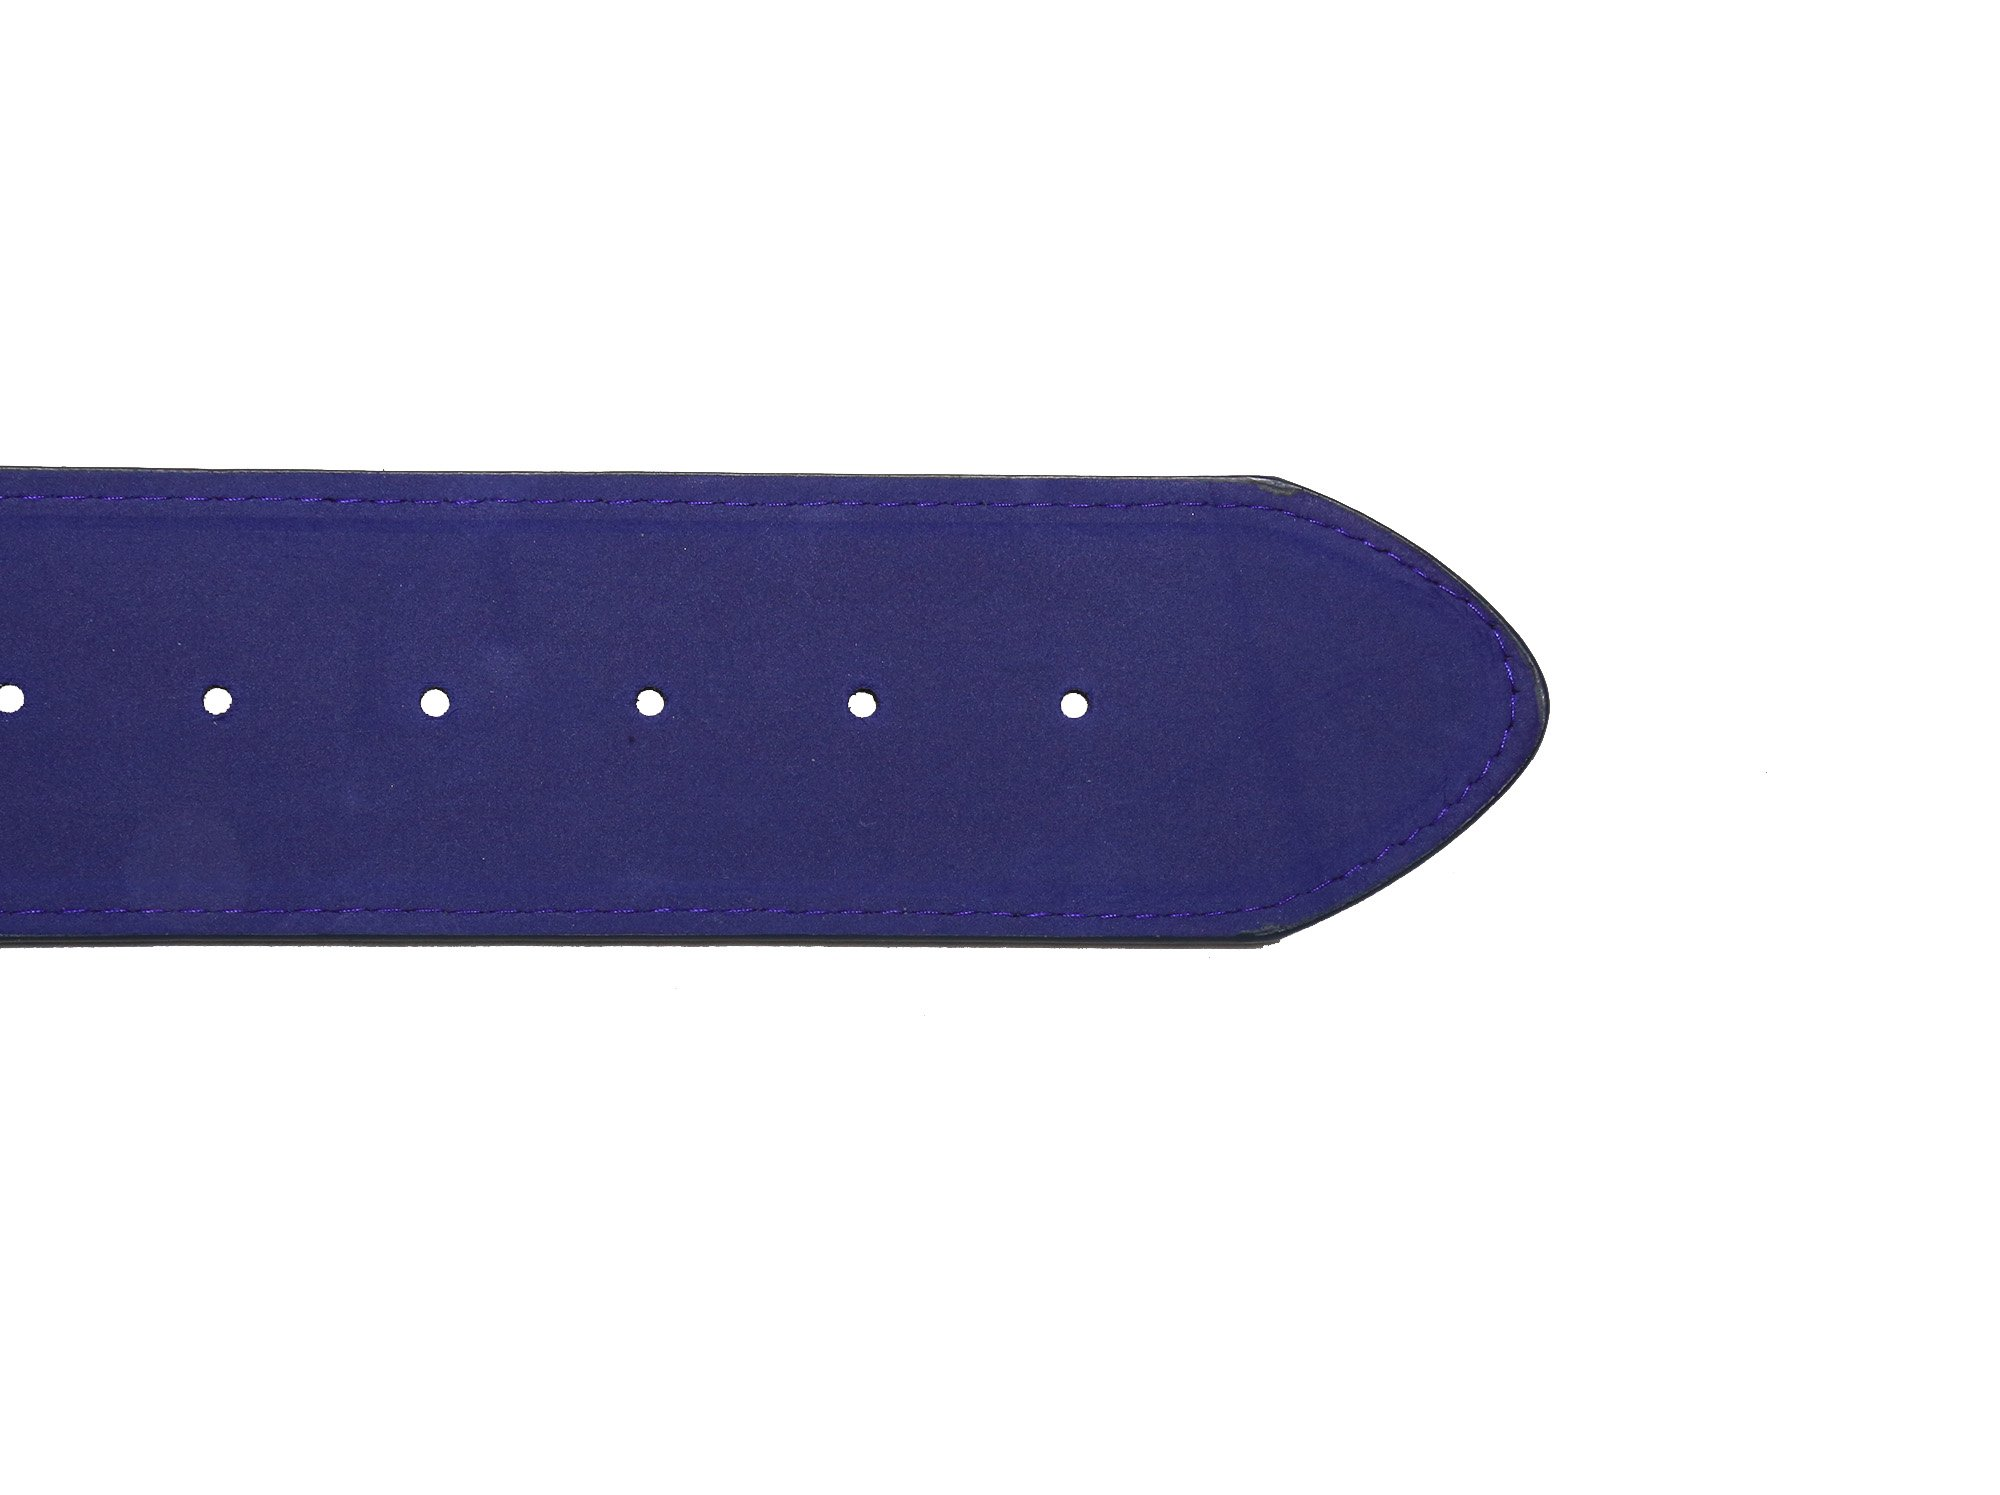 Modeway Women 2'' Wide Suede Leather Silver Square Buckle Adjustable Waist Belts (S-M, Navy-4#) by Modeway (Image #2)